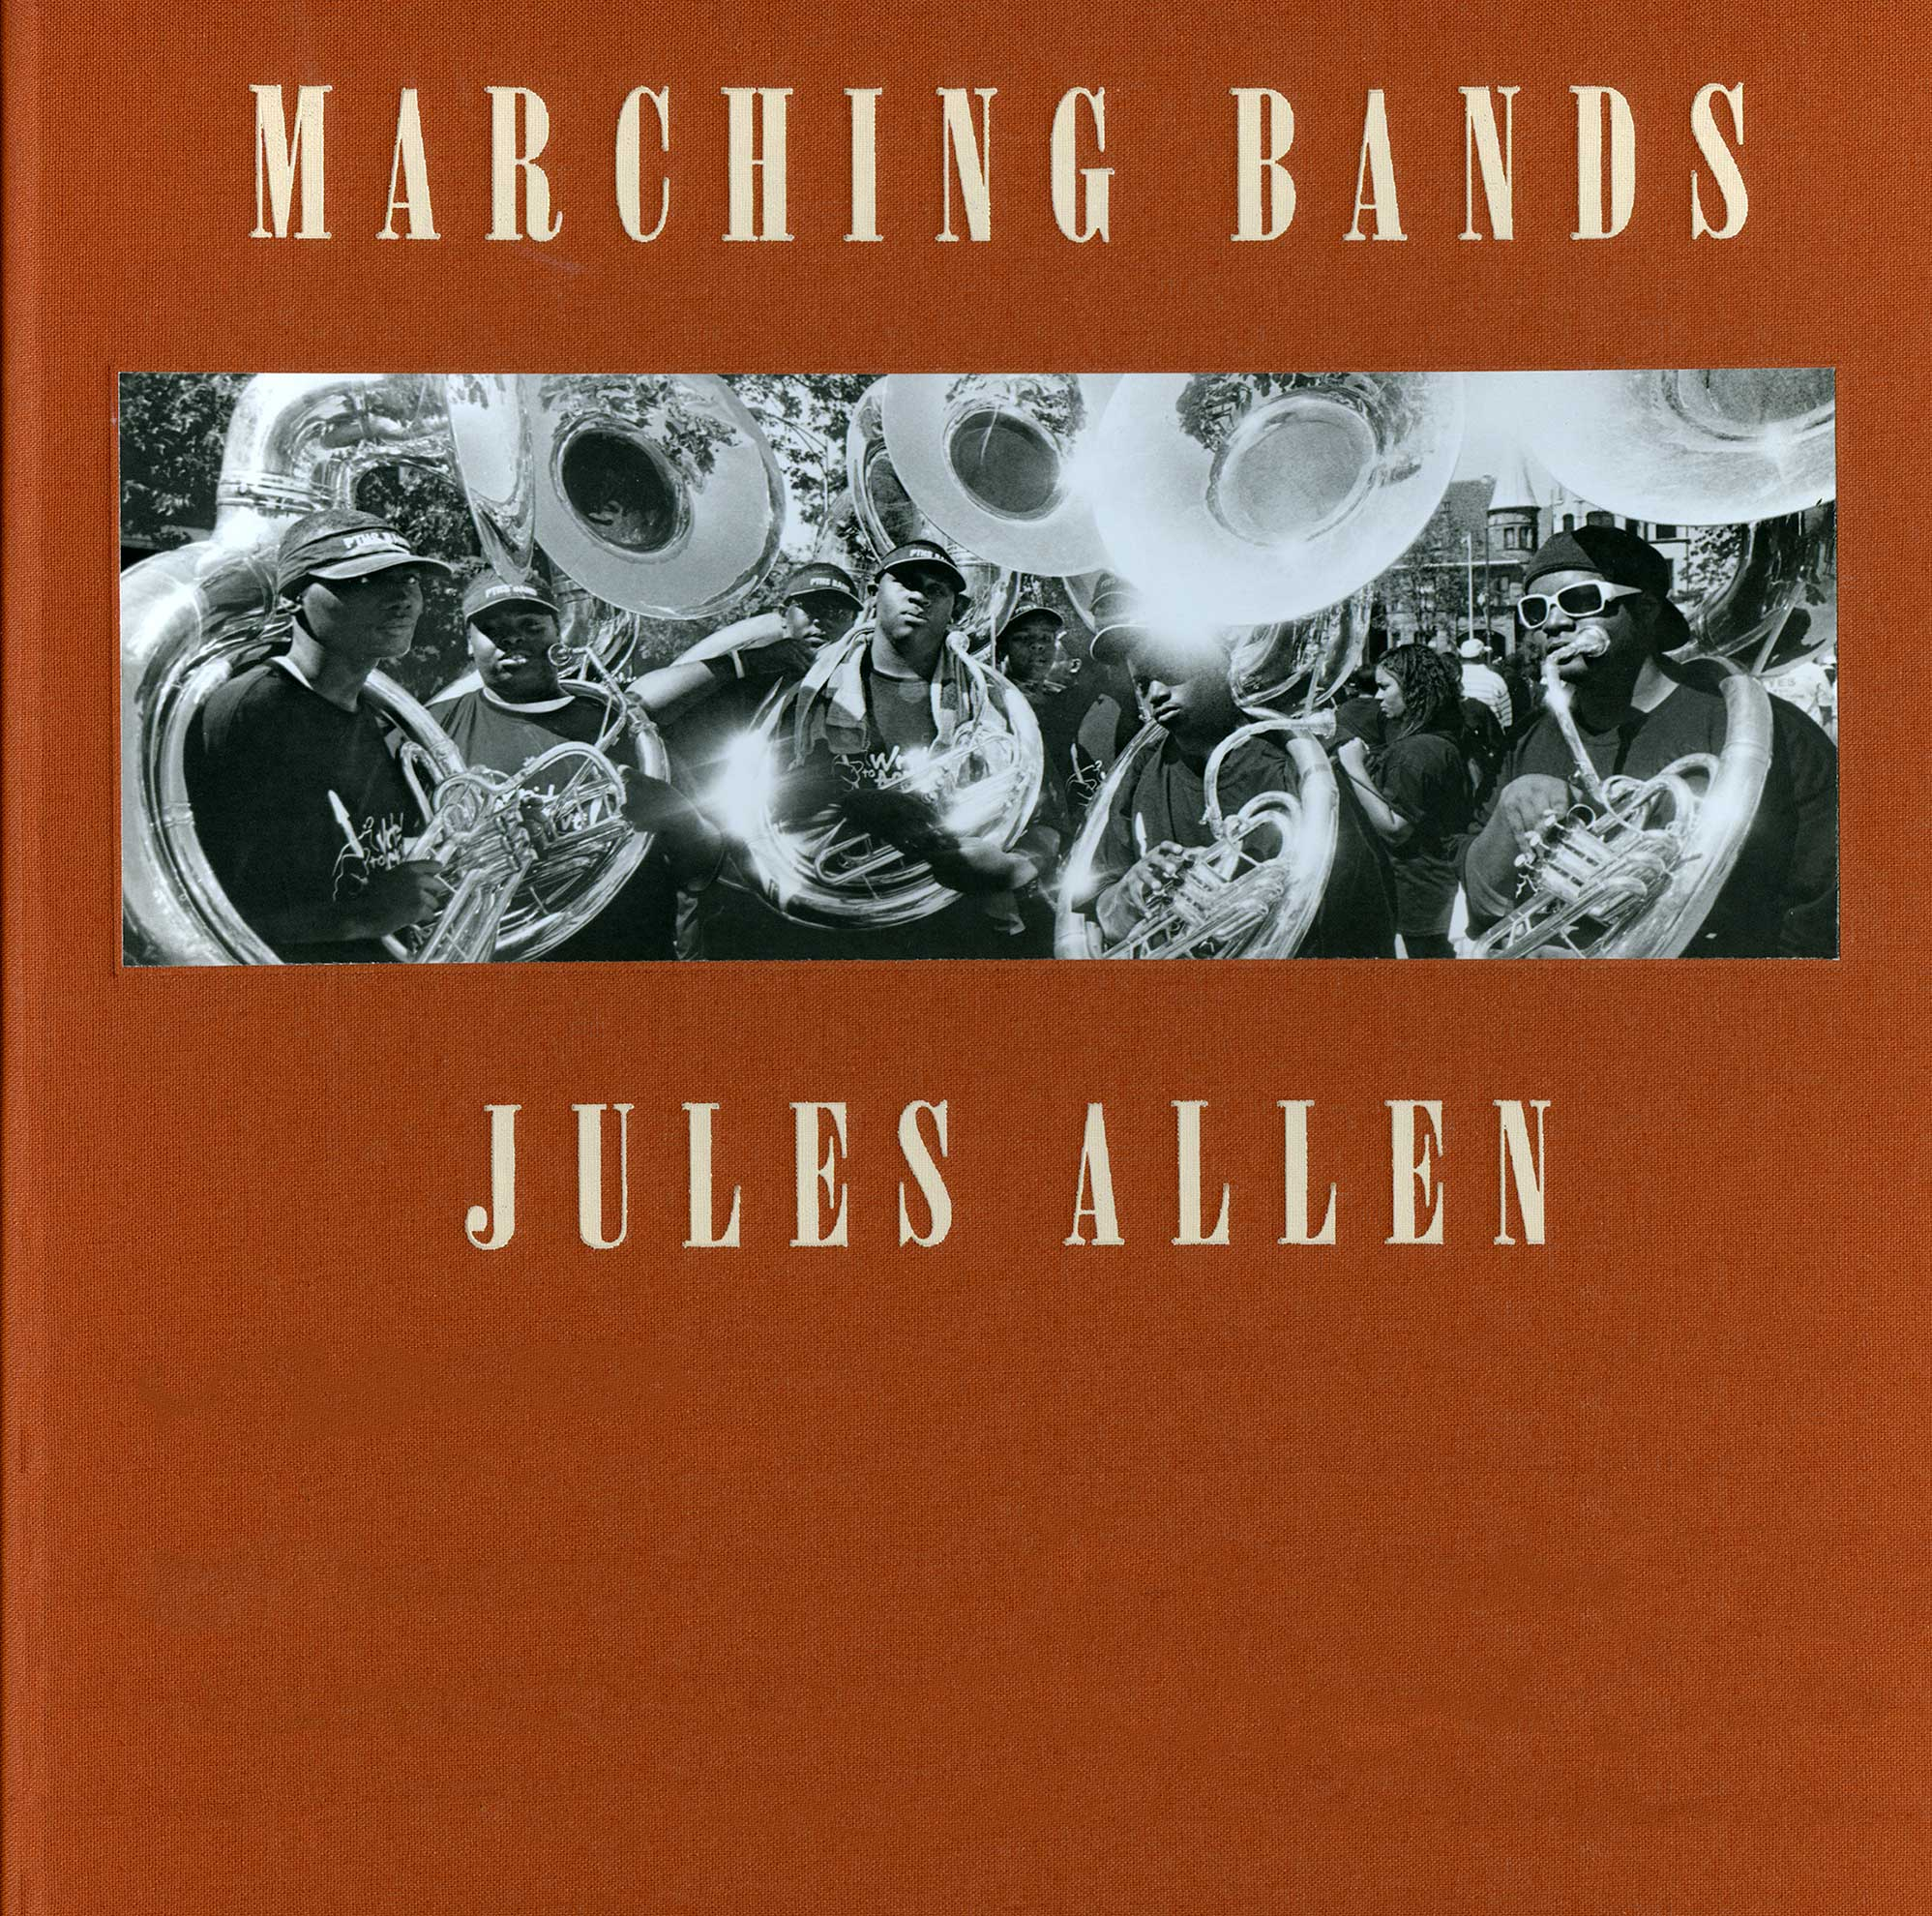 Marching Bands Book Cover